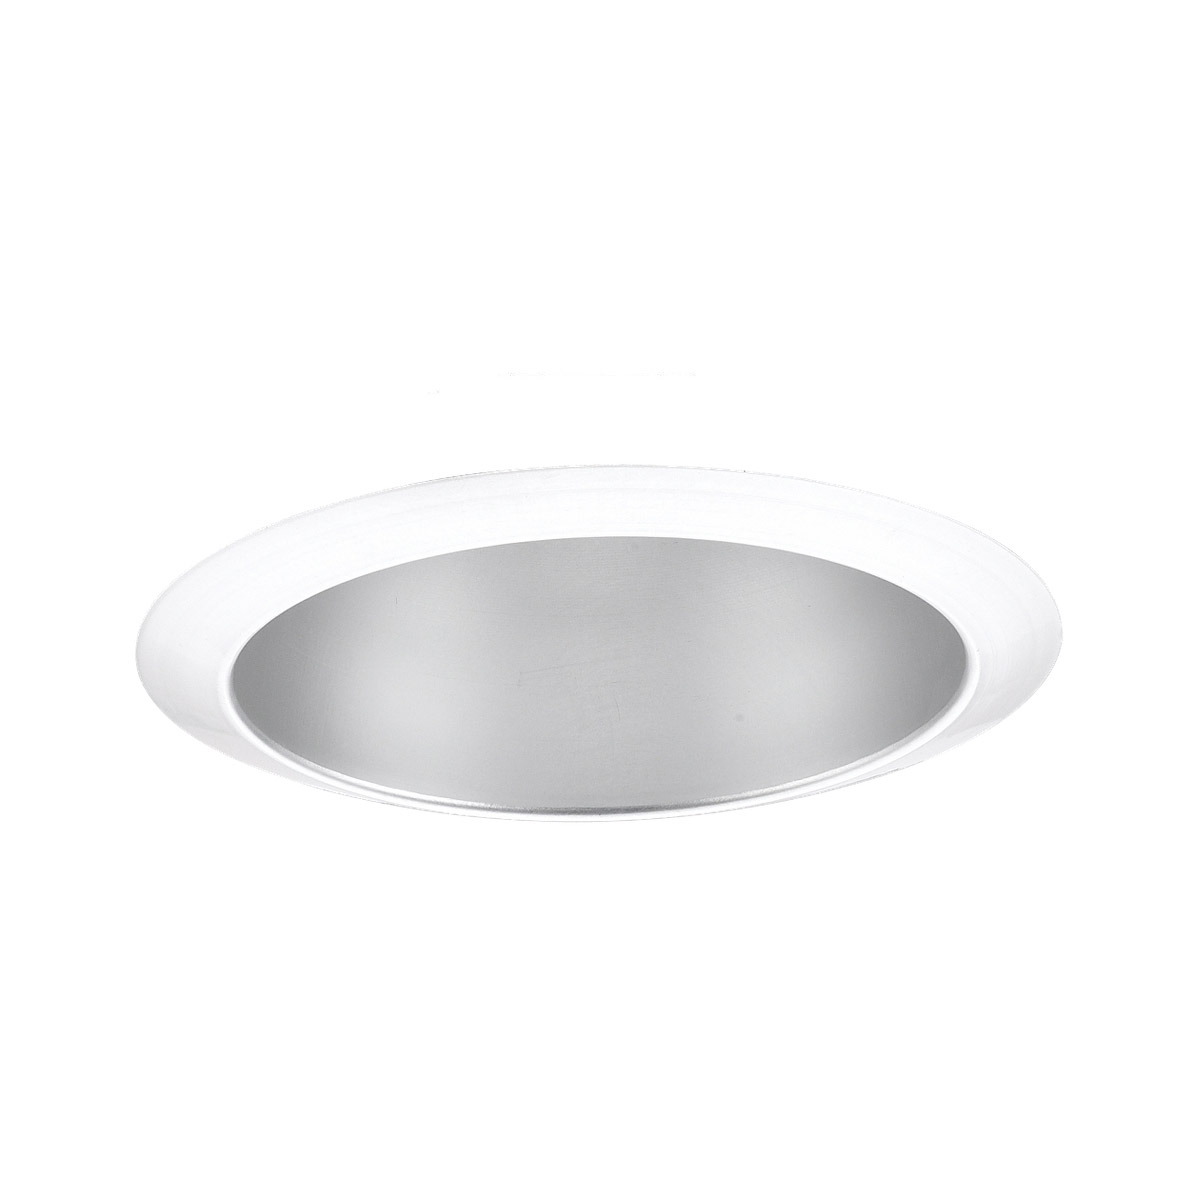 Sea Gull Lighting Signature Recessed Trim Only in Satin Nickel - White 11032AT-861 photo